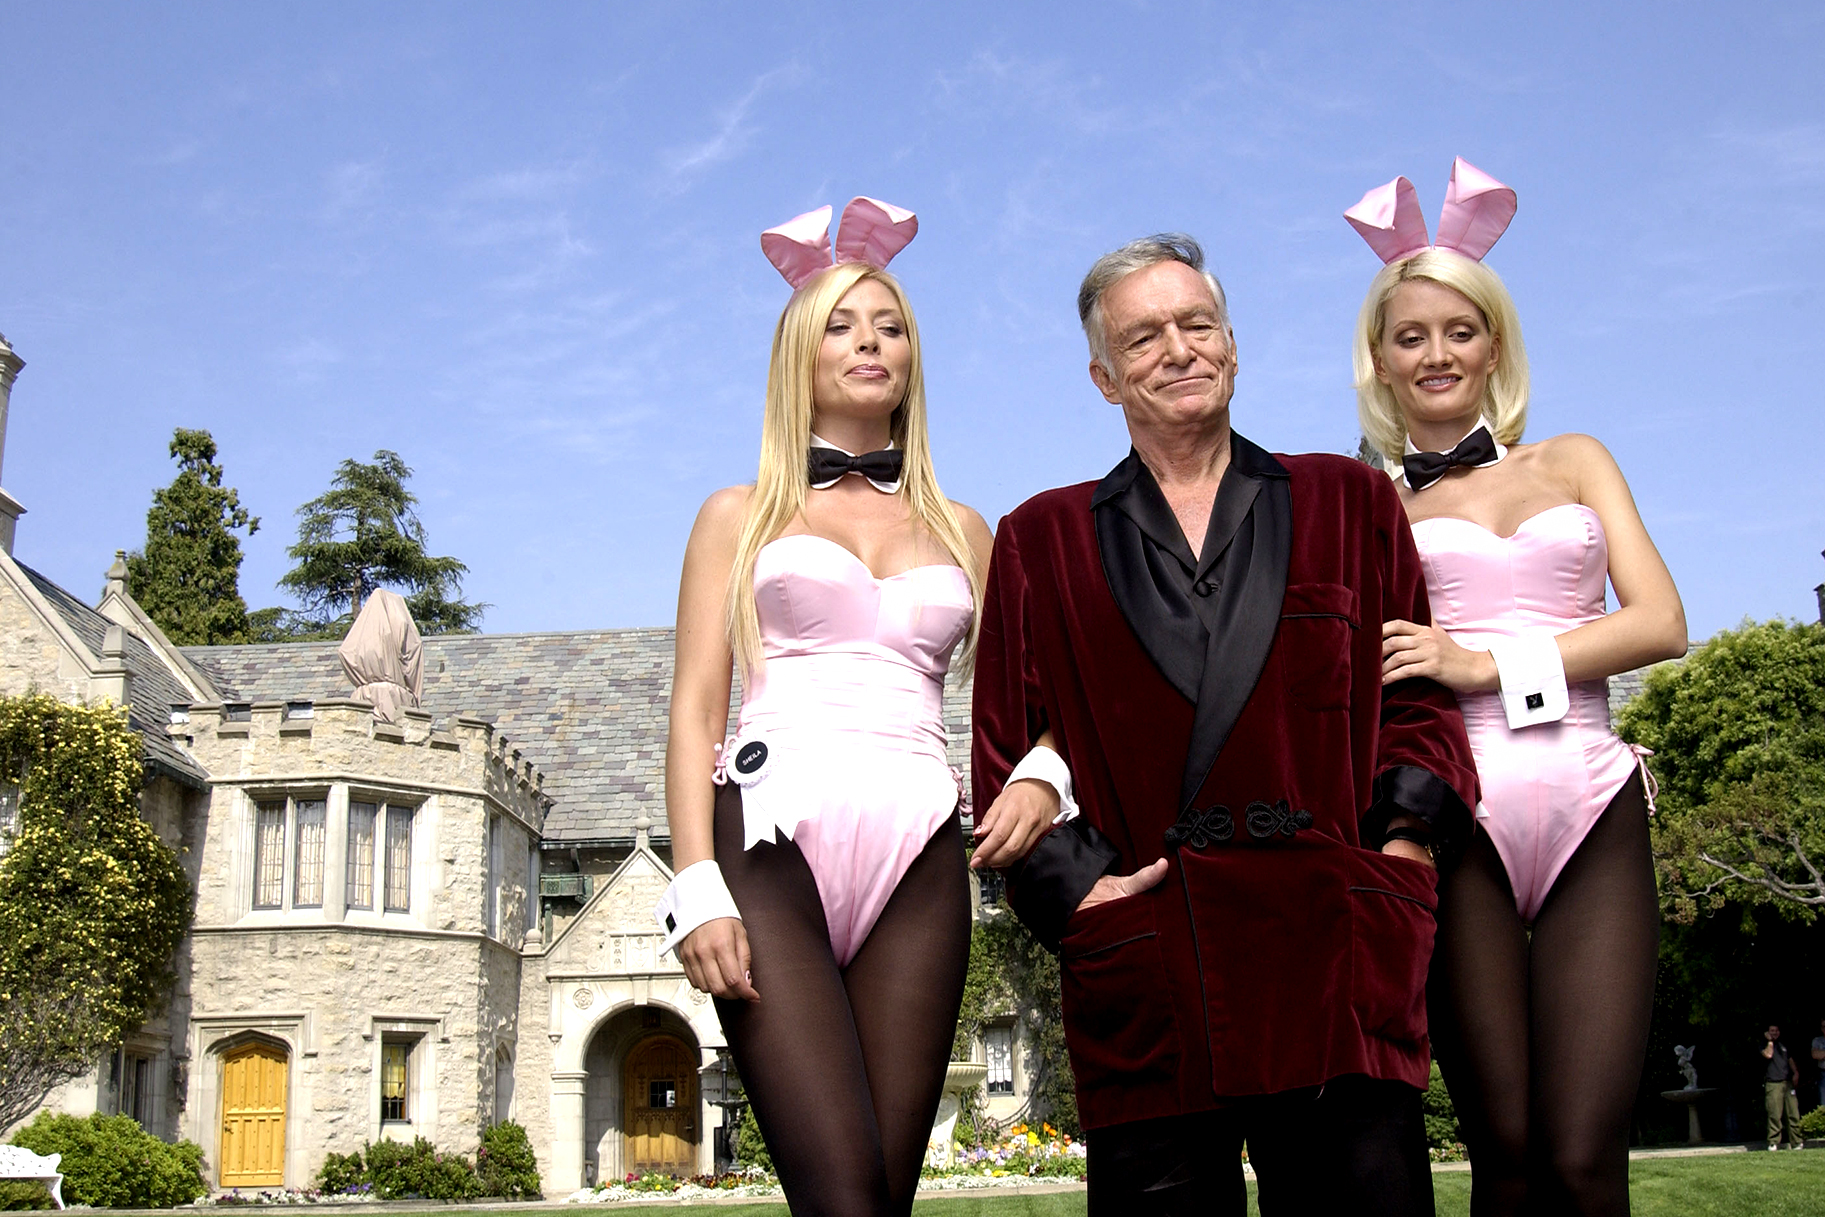 How Hugh Hefner's World Helped Donald Trump Get Into The White House